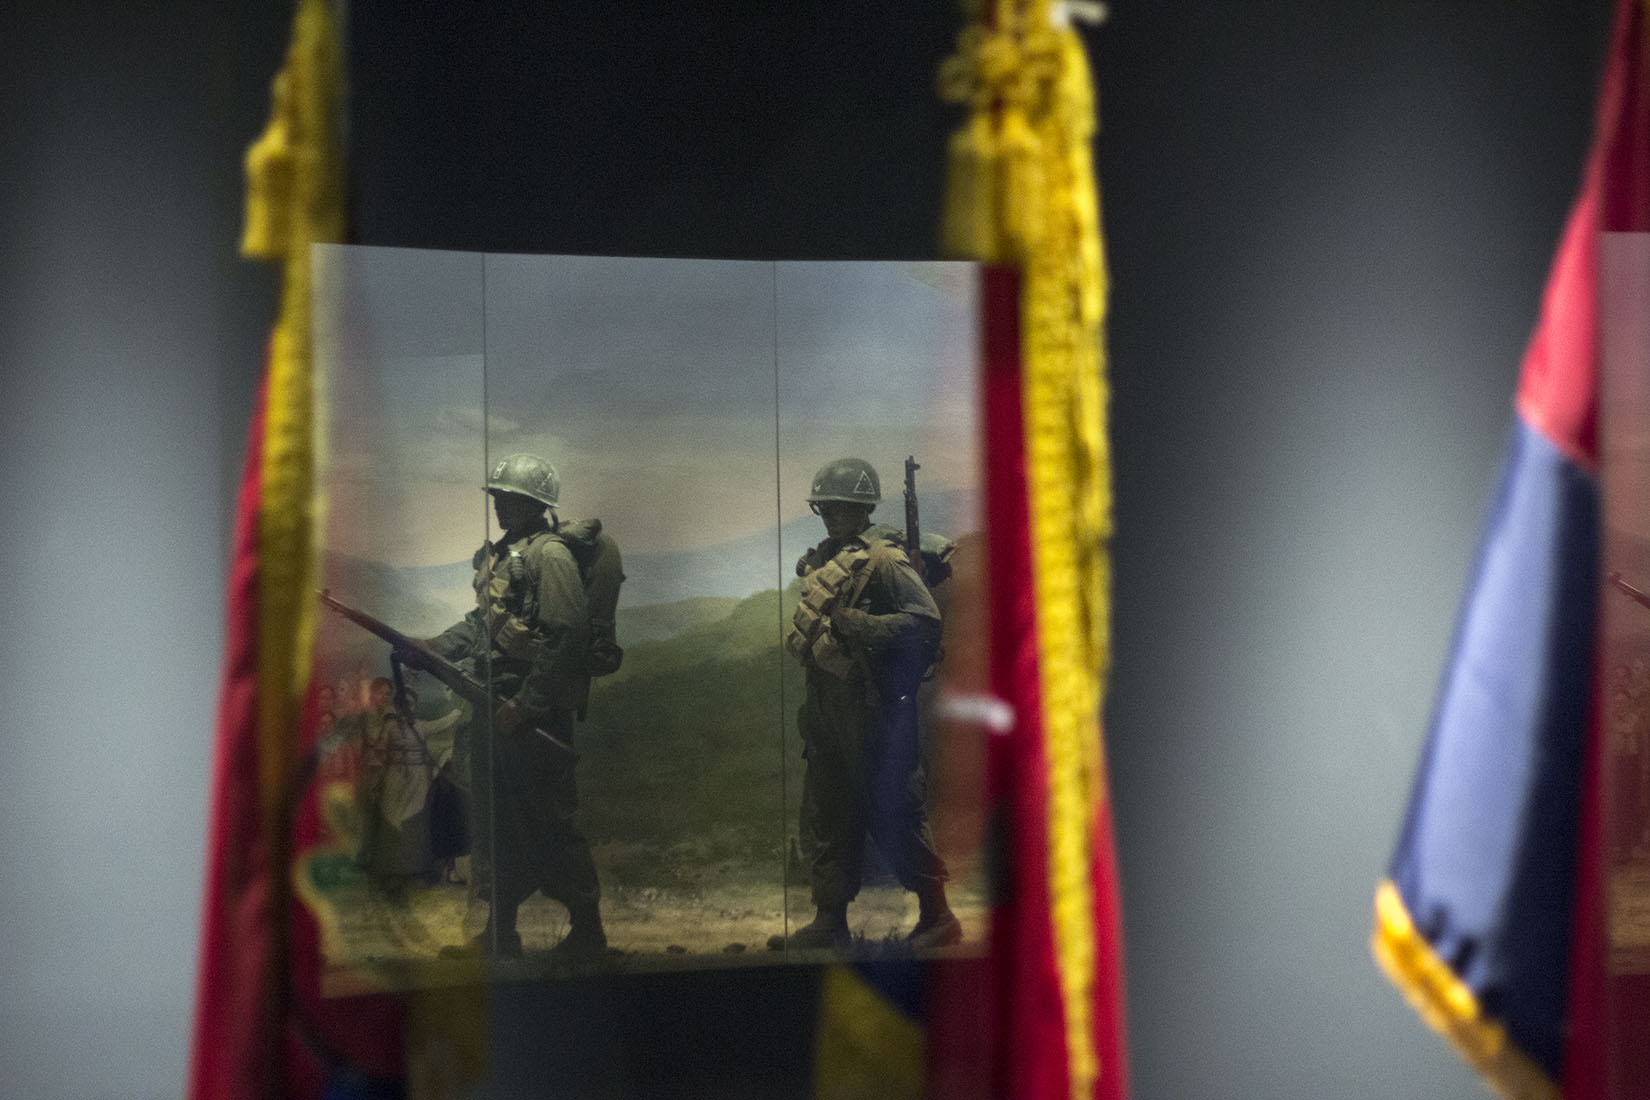 Reflection, South Korean soldiers, flags, march, Korean War